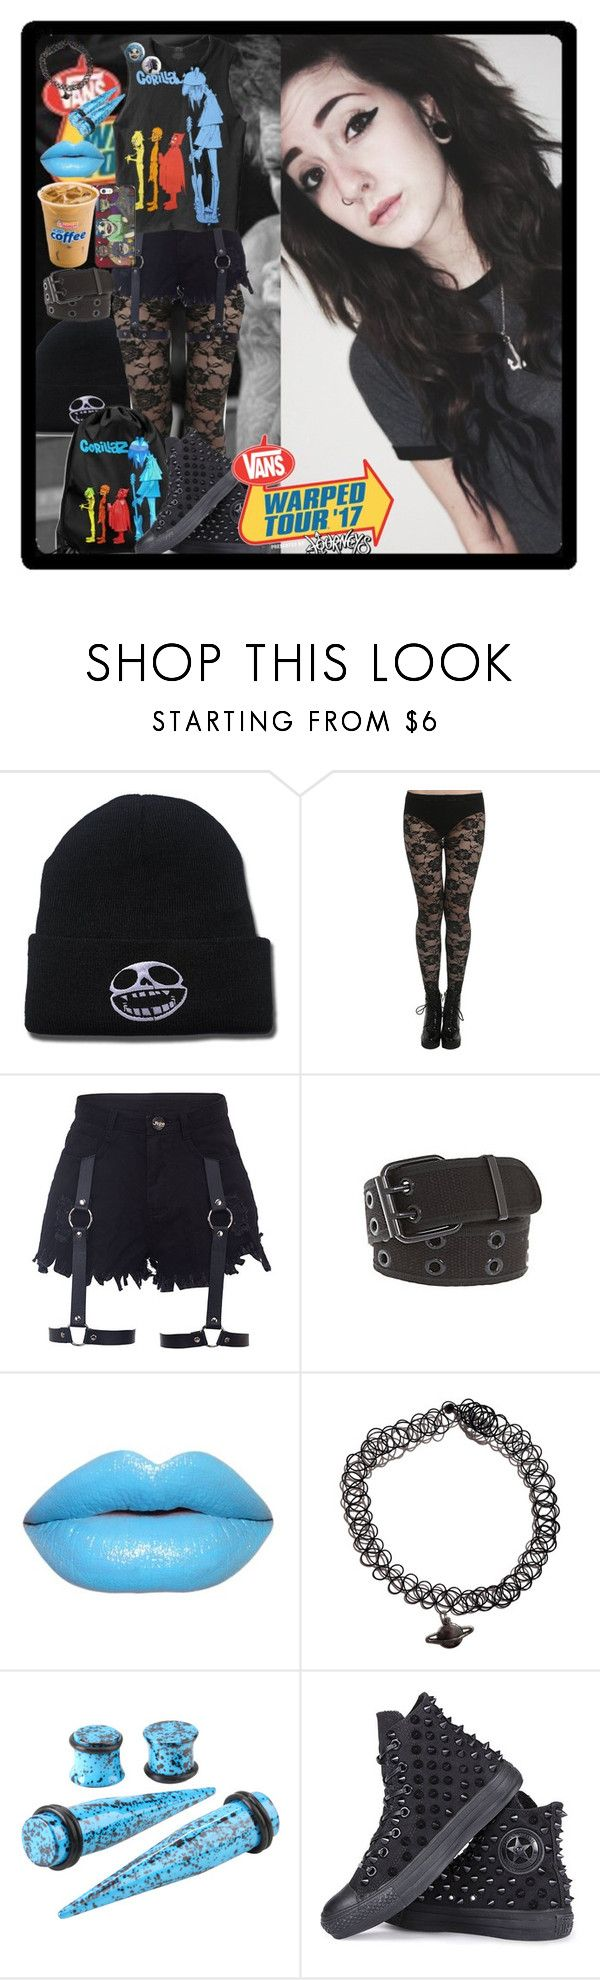 """Gorillaz Warped Tour Outfit"" by chemicalfallout249 ❤ liked on Polyvore featuring Retrò, Converse, emo, bands and alternative"